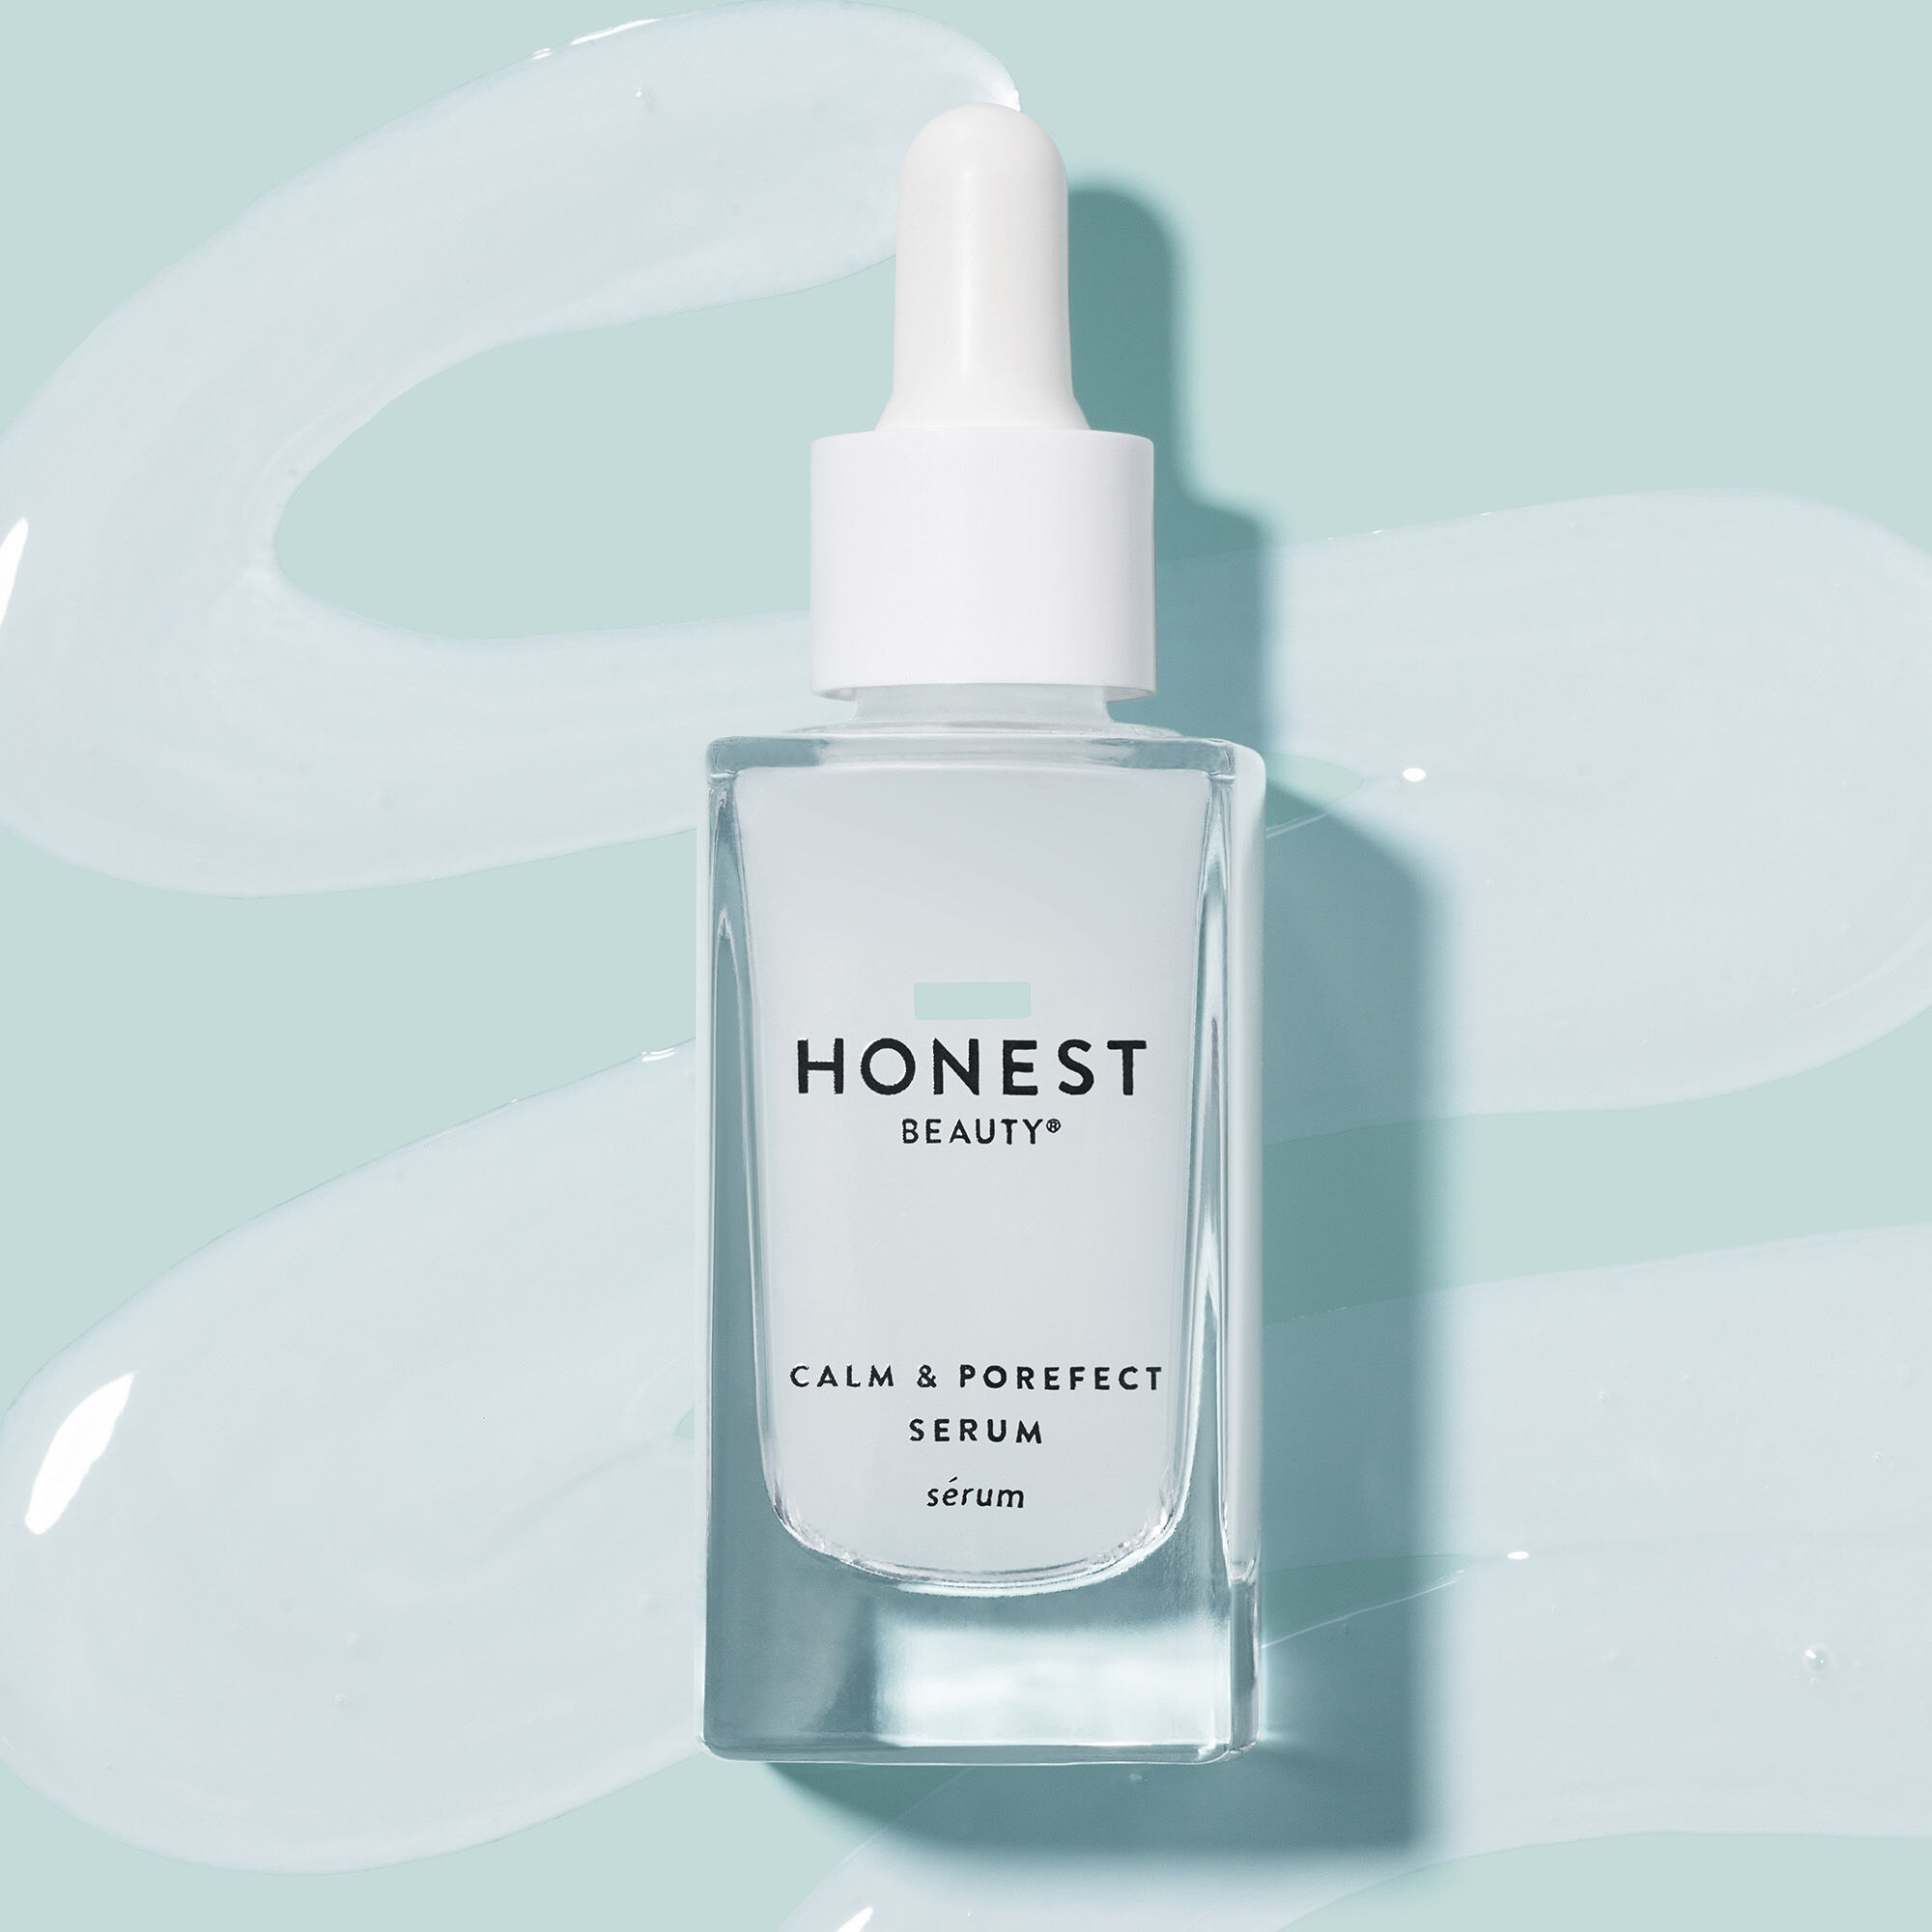 Calm & POREfect Serum